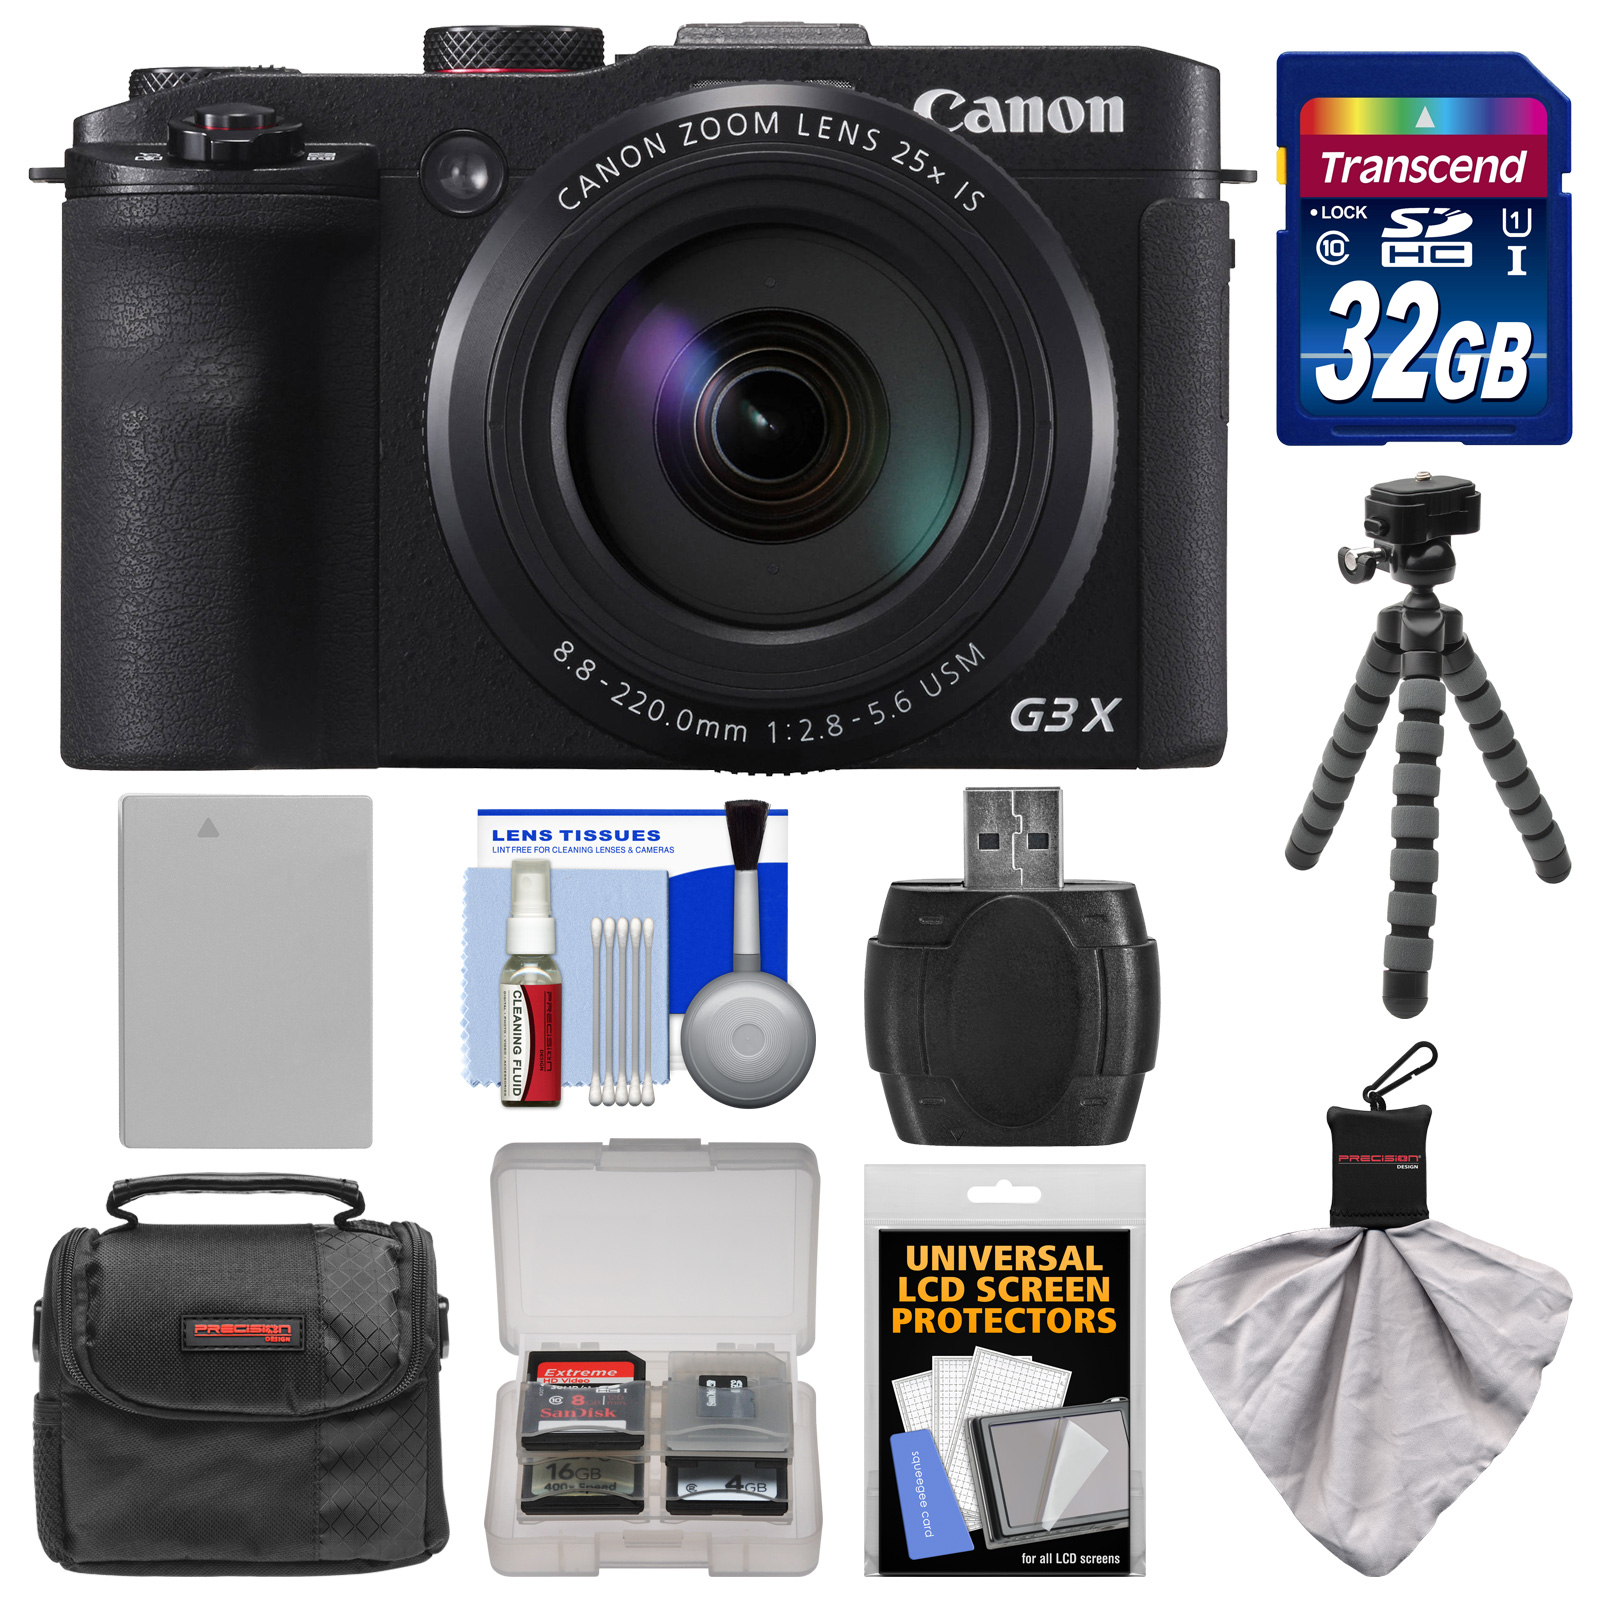 Canon PowerShot G3 X Wi-Fi Digital Camera with 32GB Card   Battery   Case   Flex Tripod   Kit